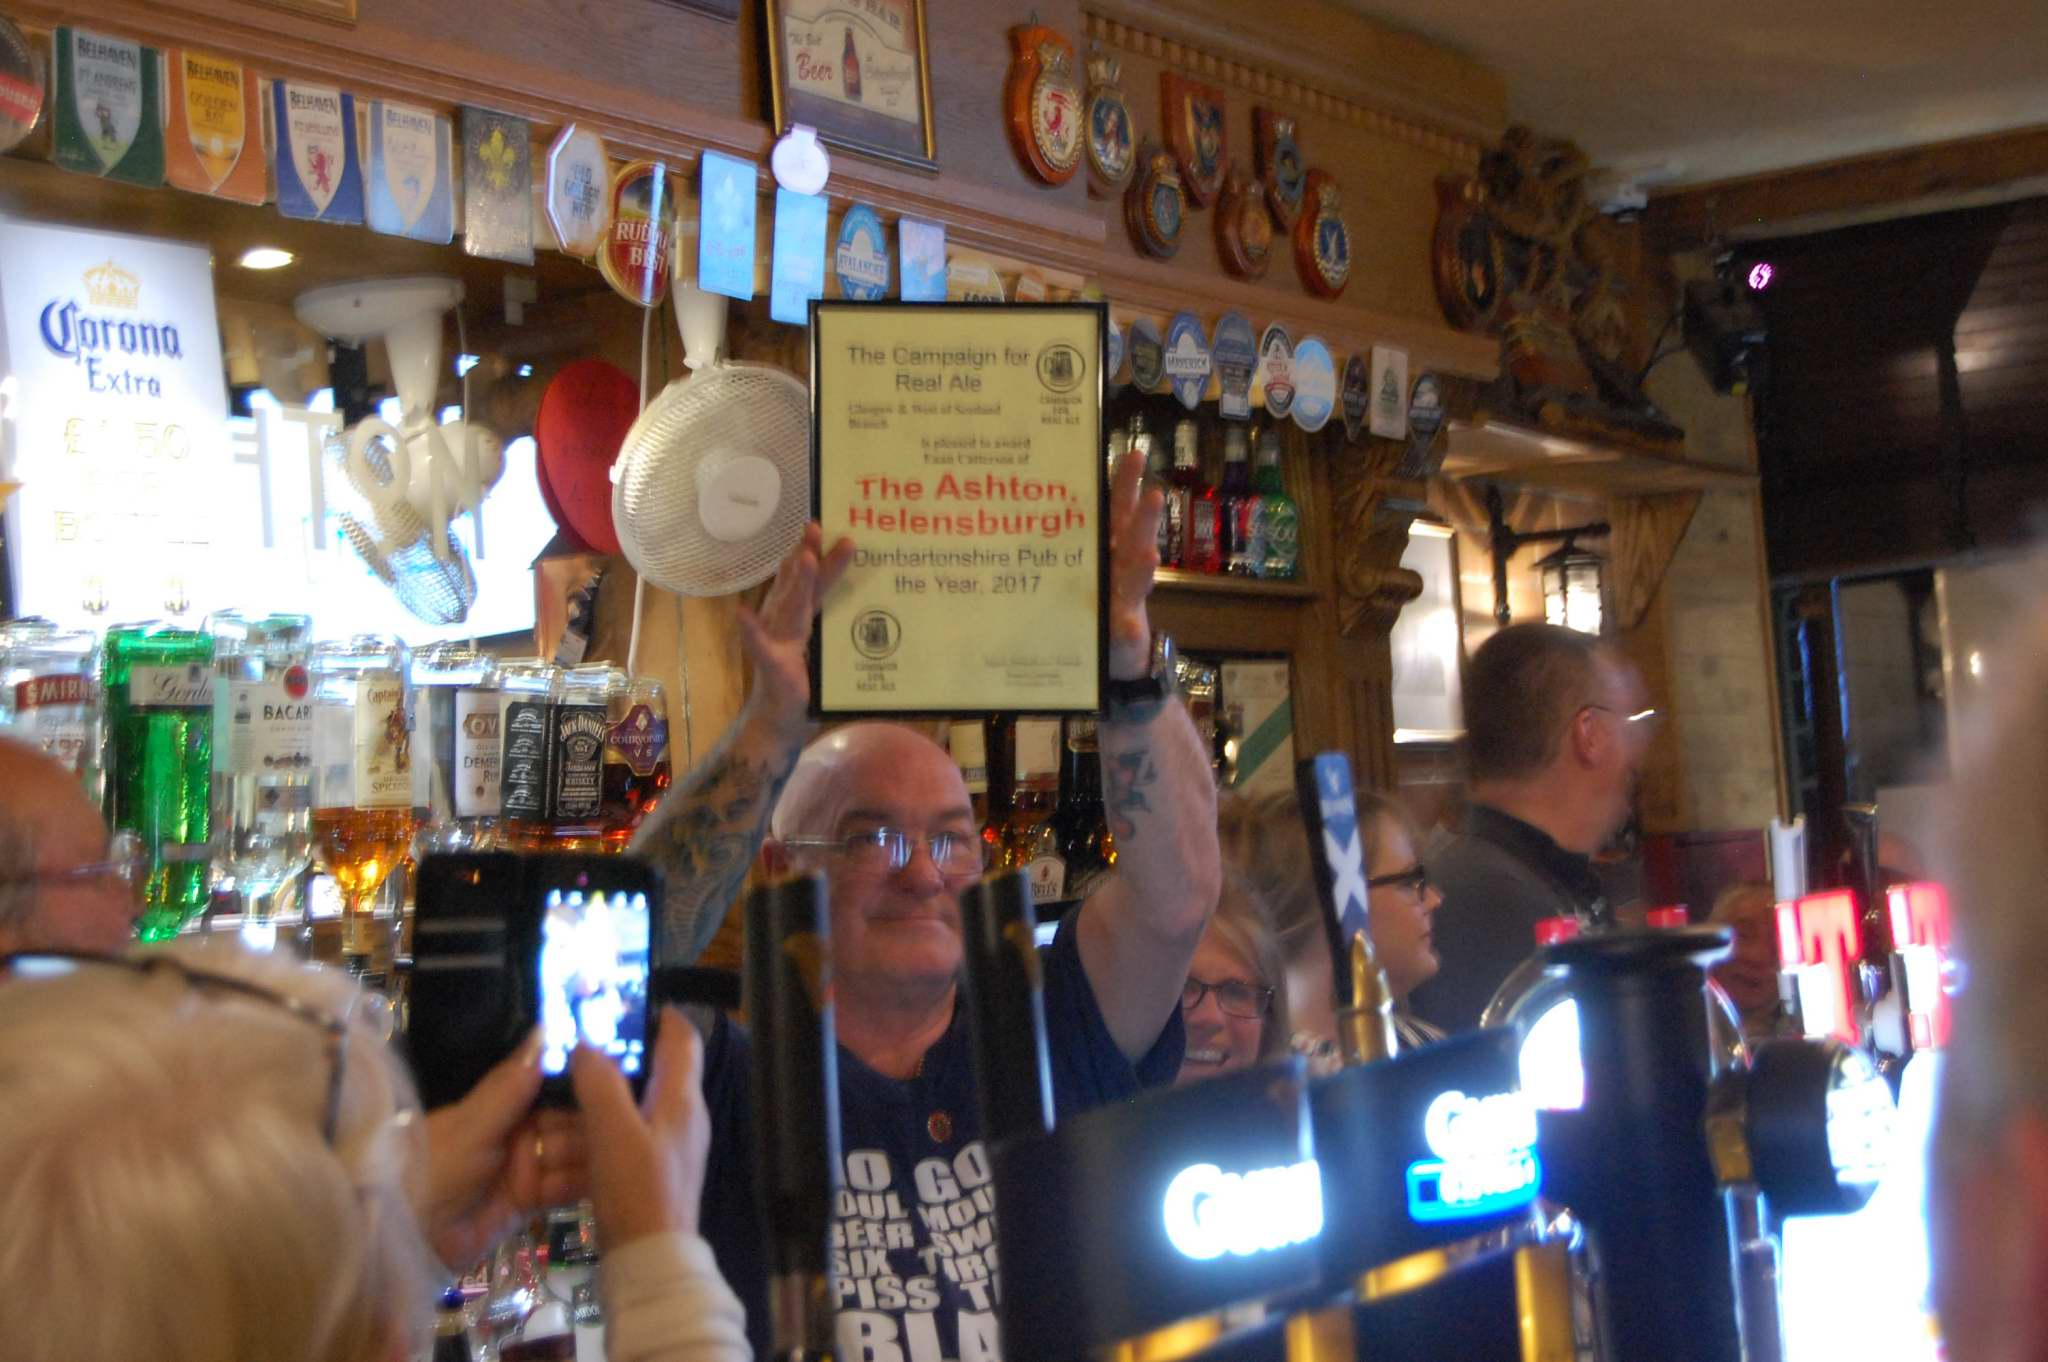 2017 Dunbartonshire Pub of the Year